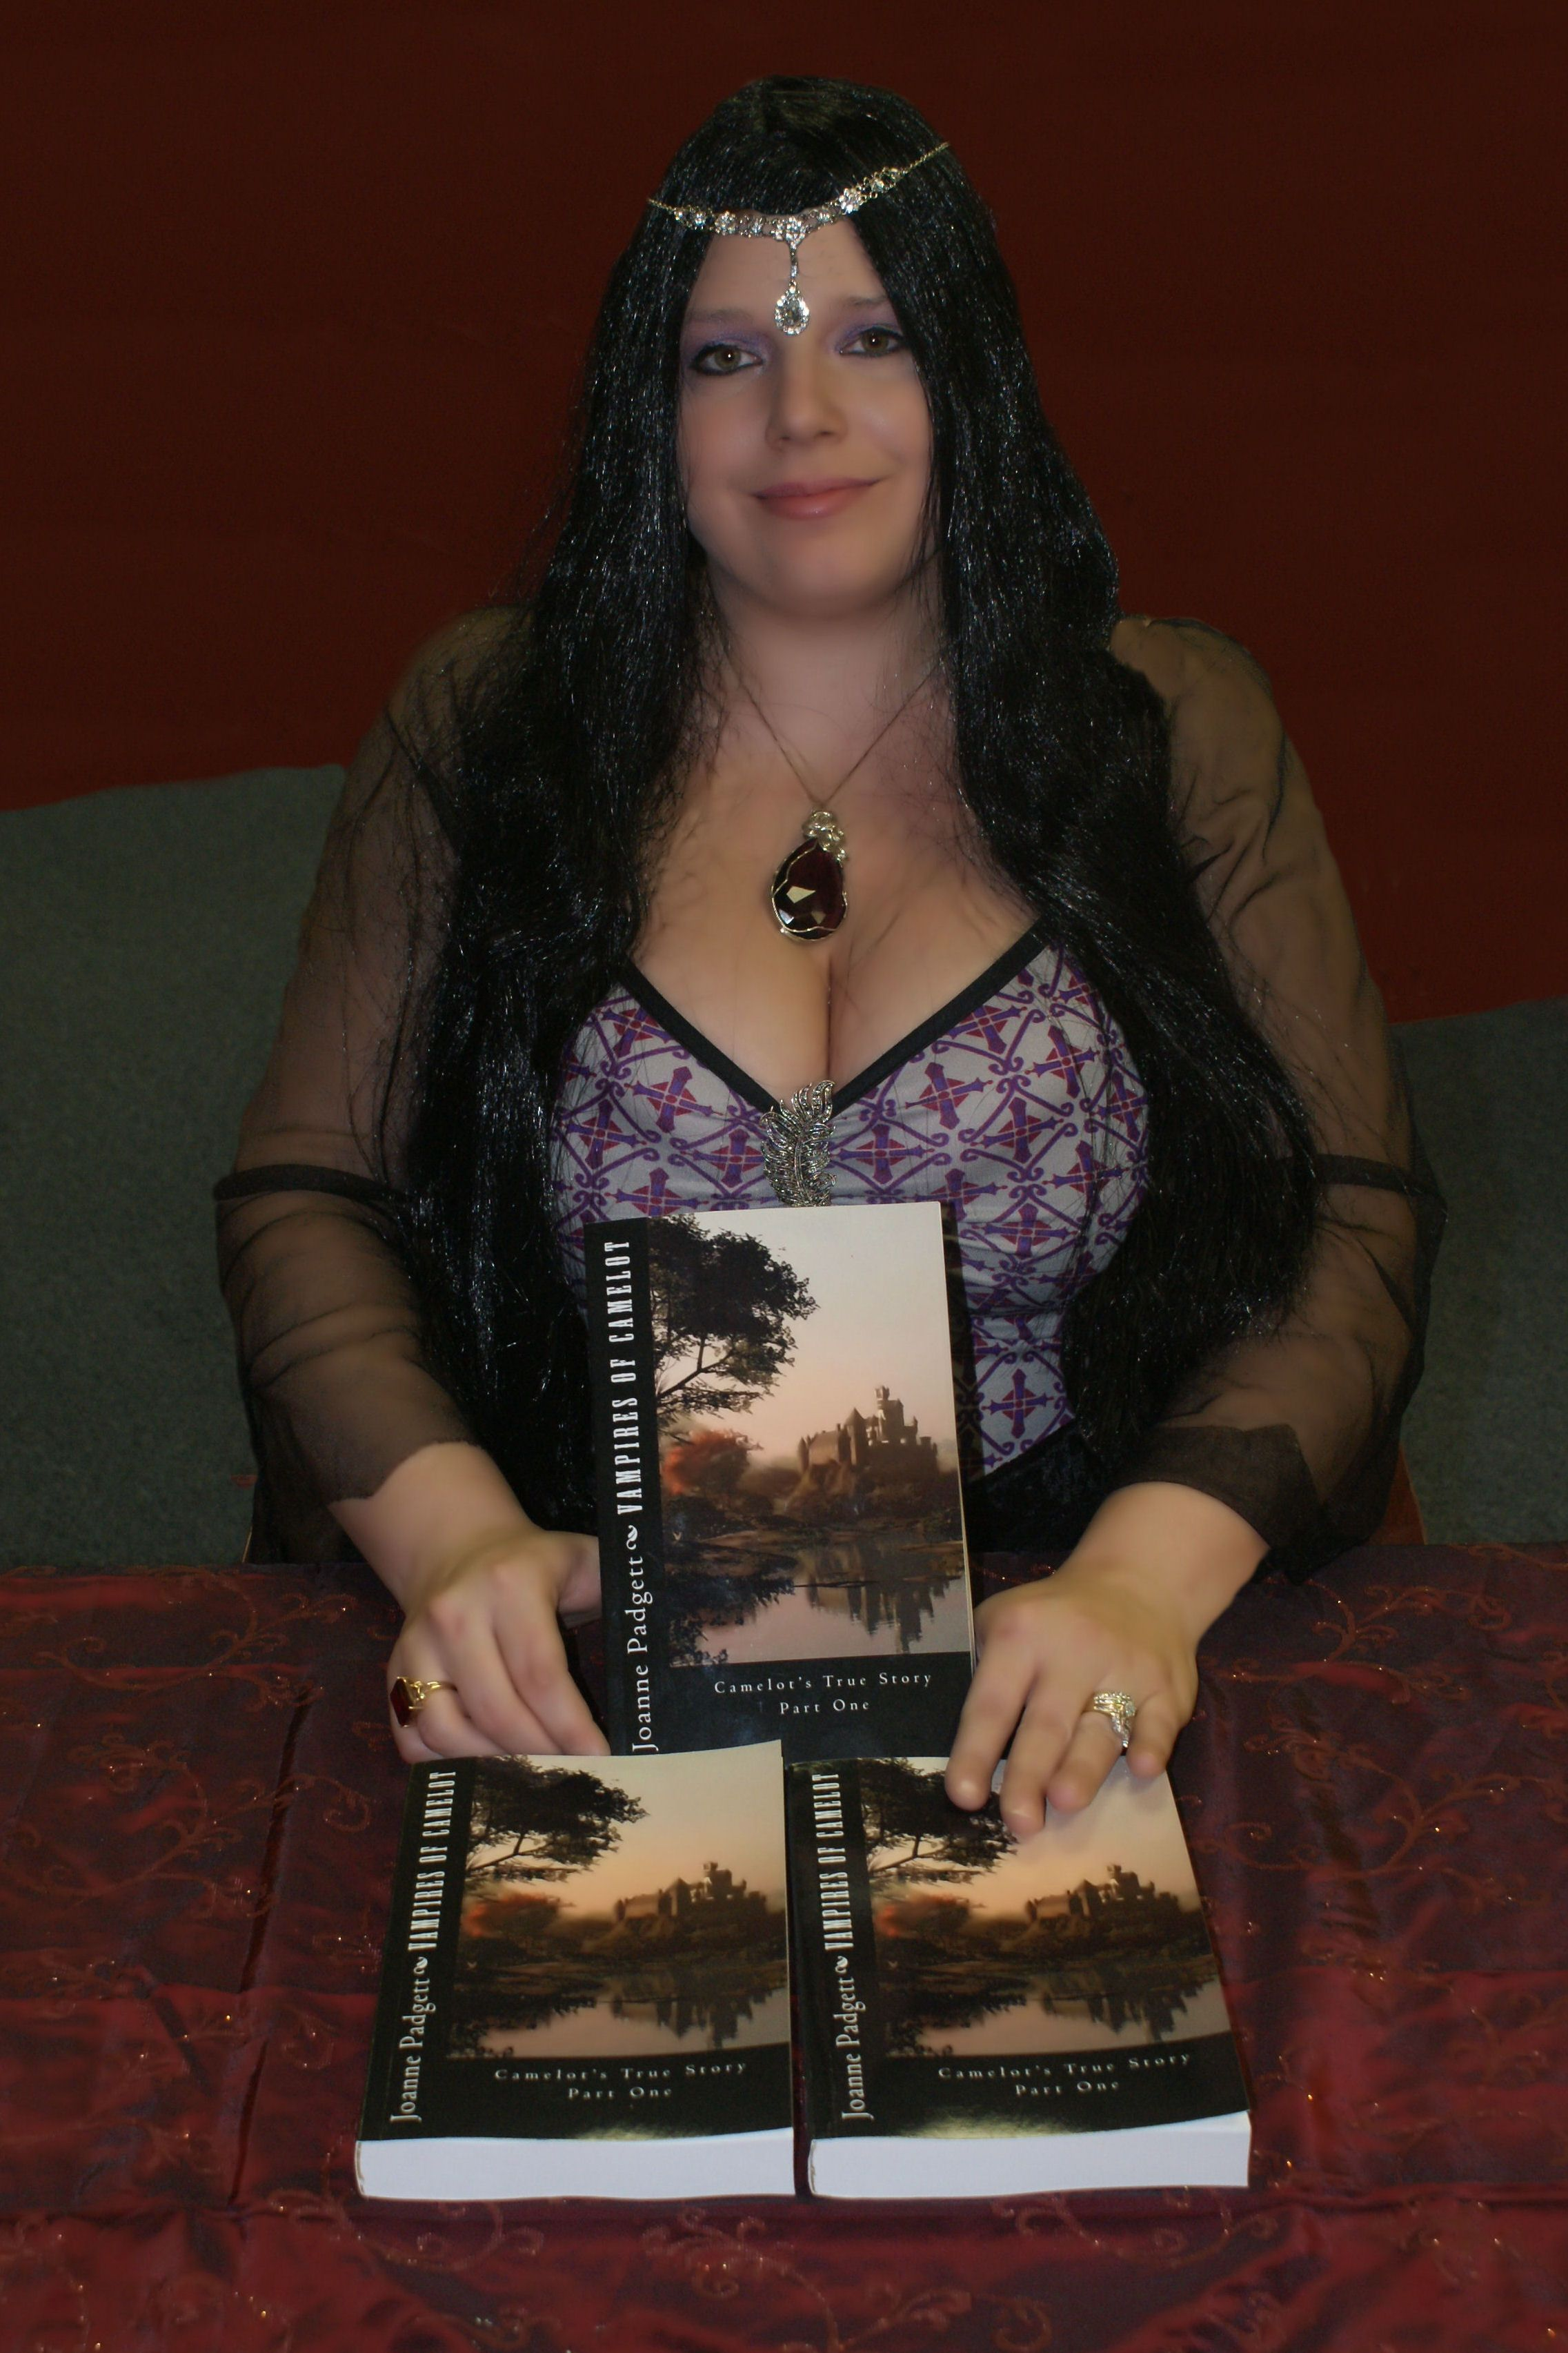 Here I am at first book signing I am dressed as Mab the evil Vampire